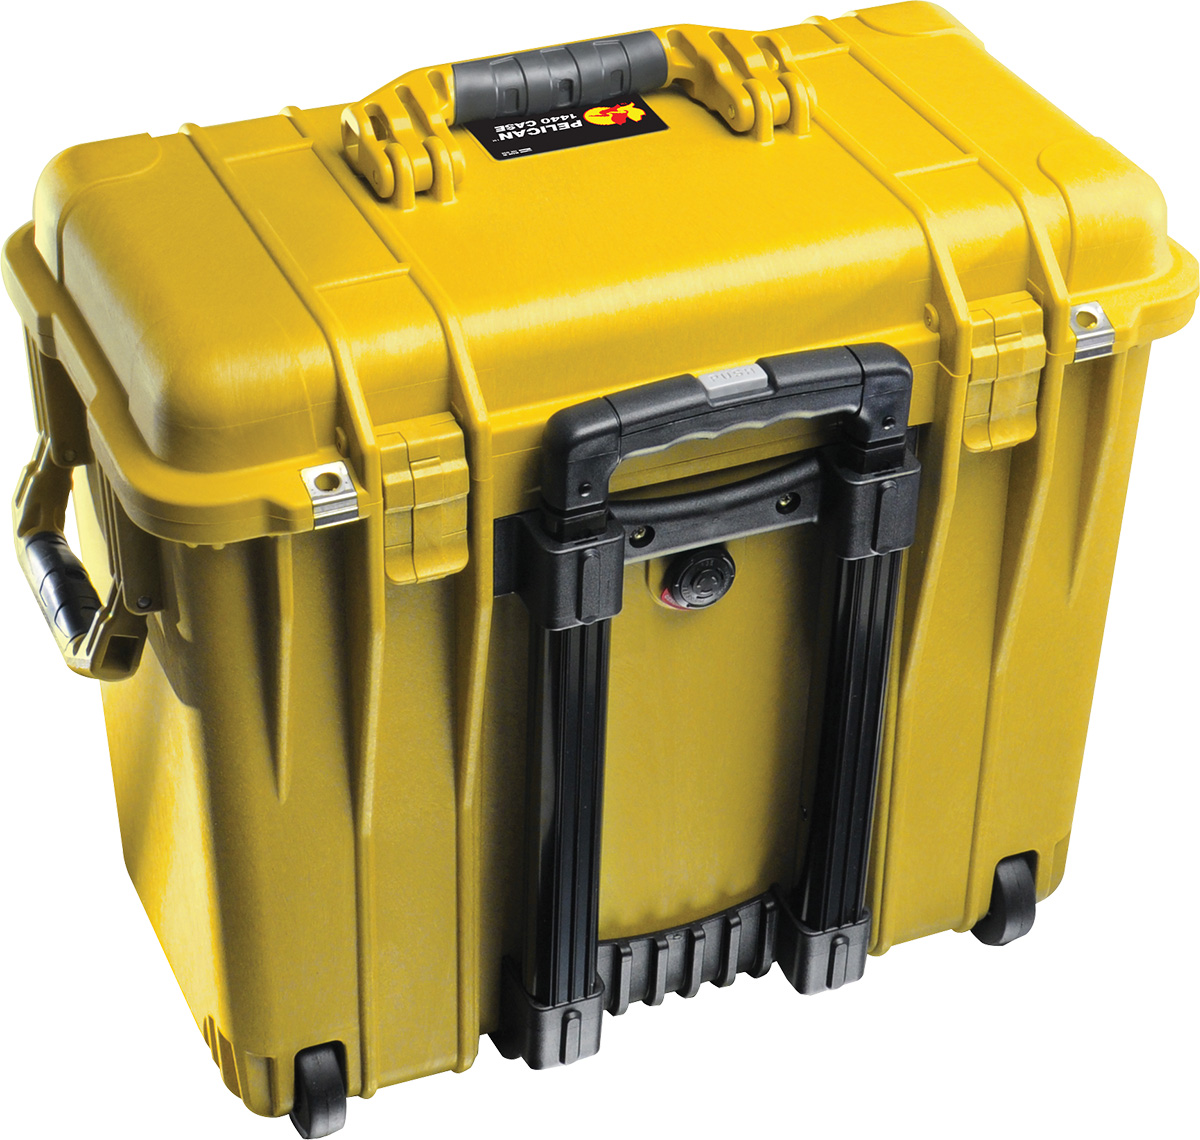 pelican 1440 yellow mobile camera case